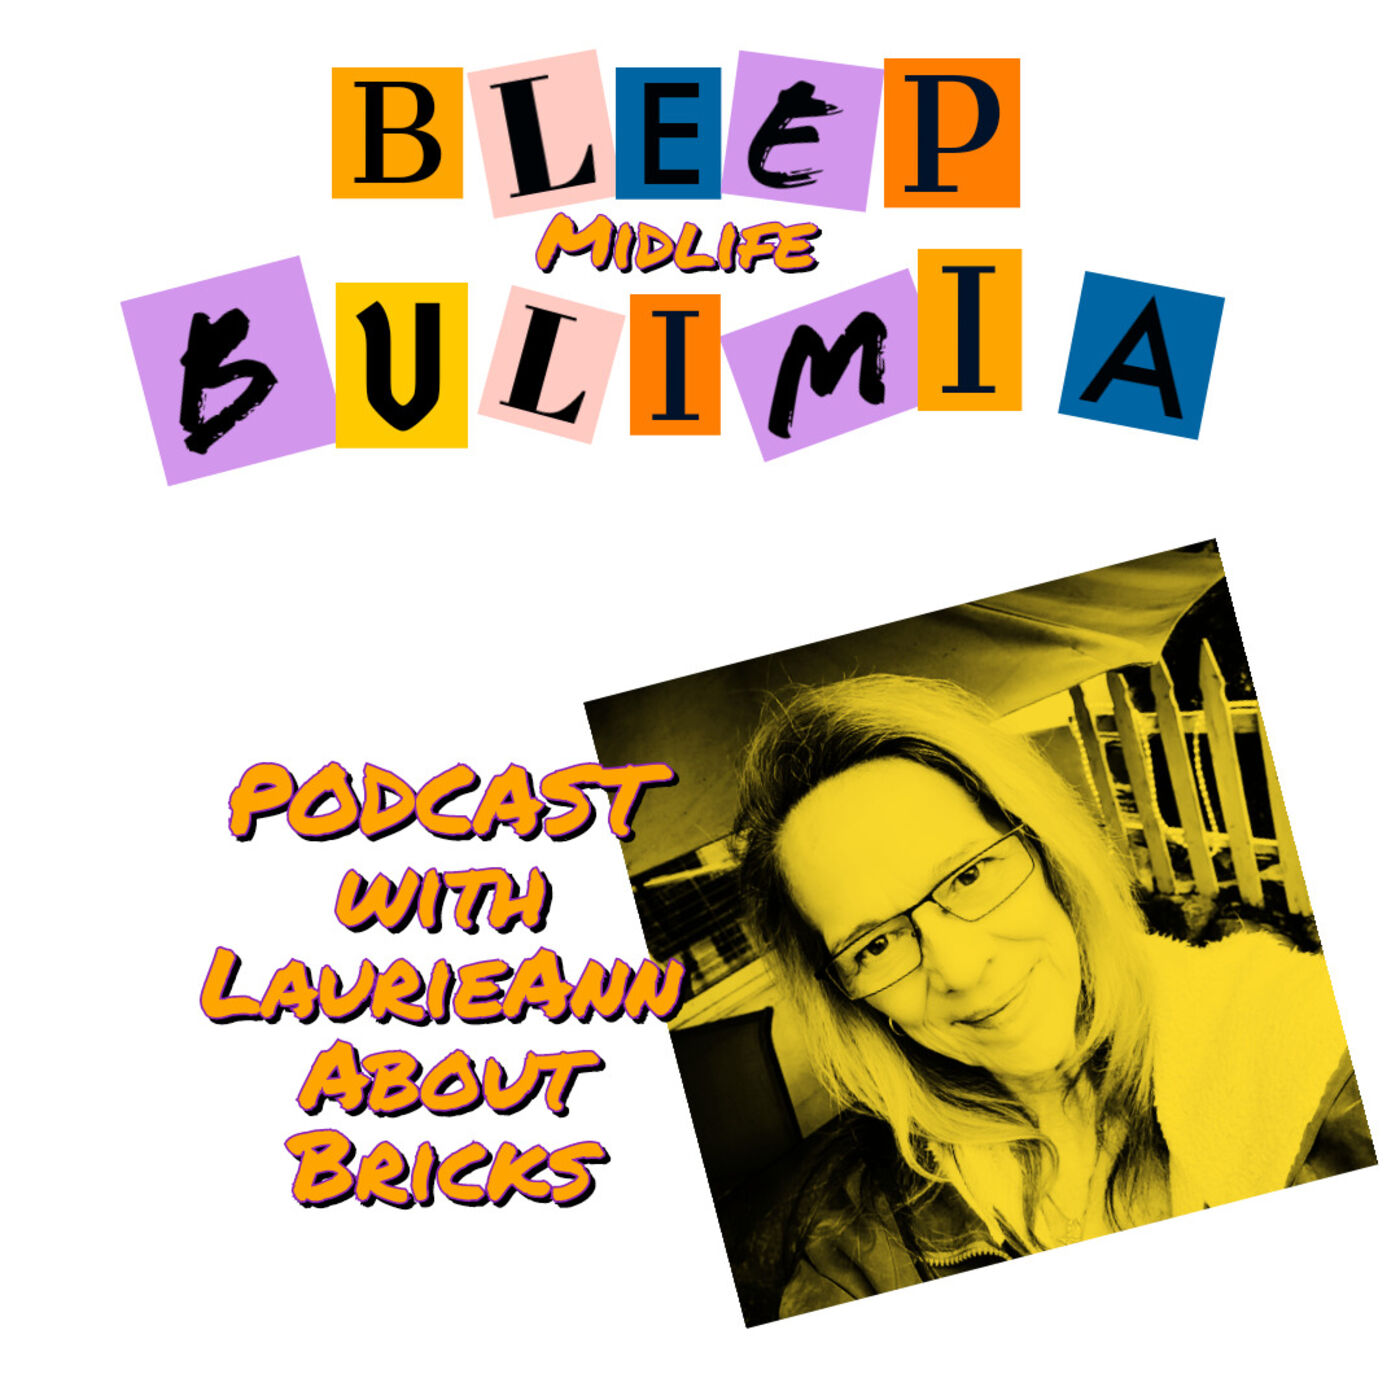 Bleep Bulimia Episode 38 with Host LaurieAnn About Bricks